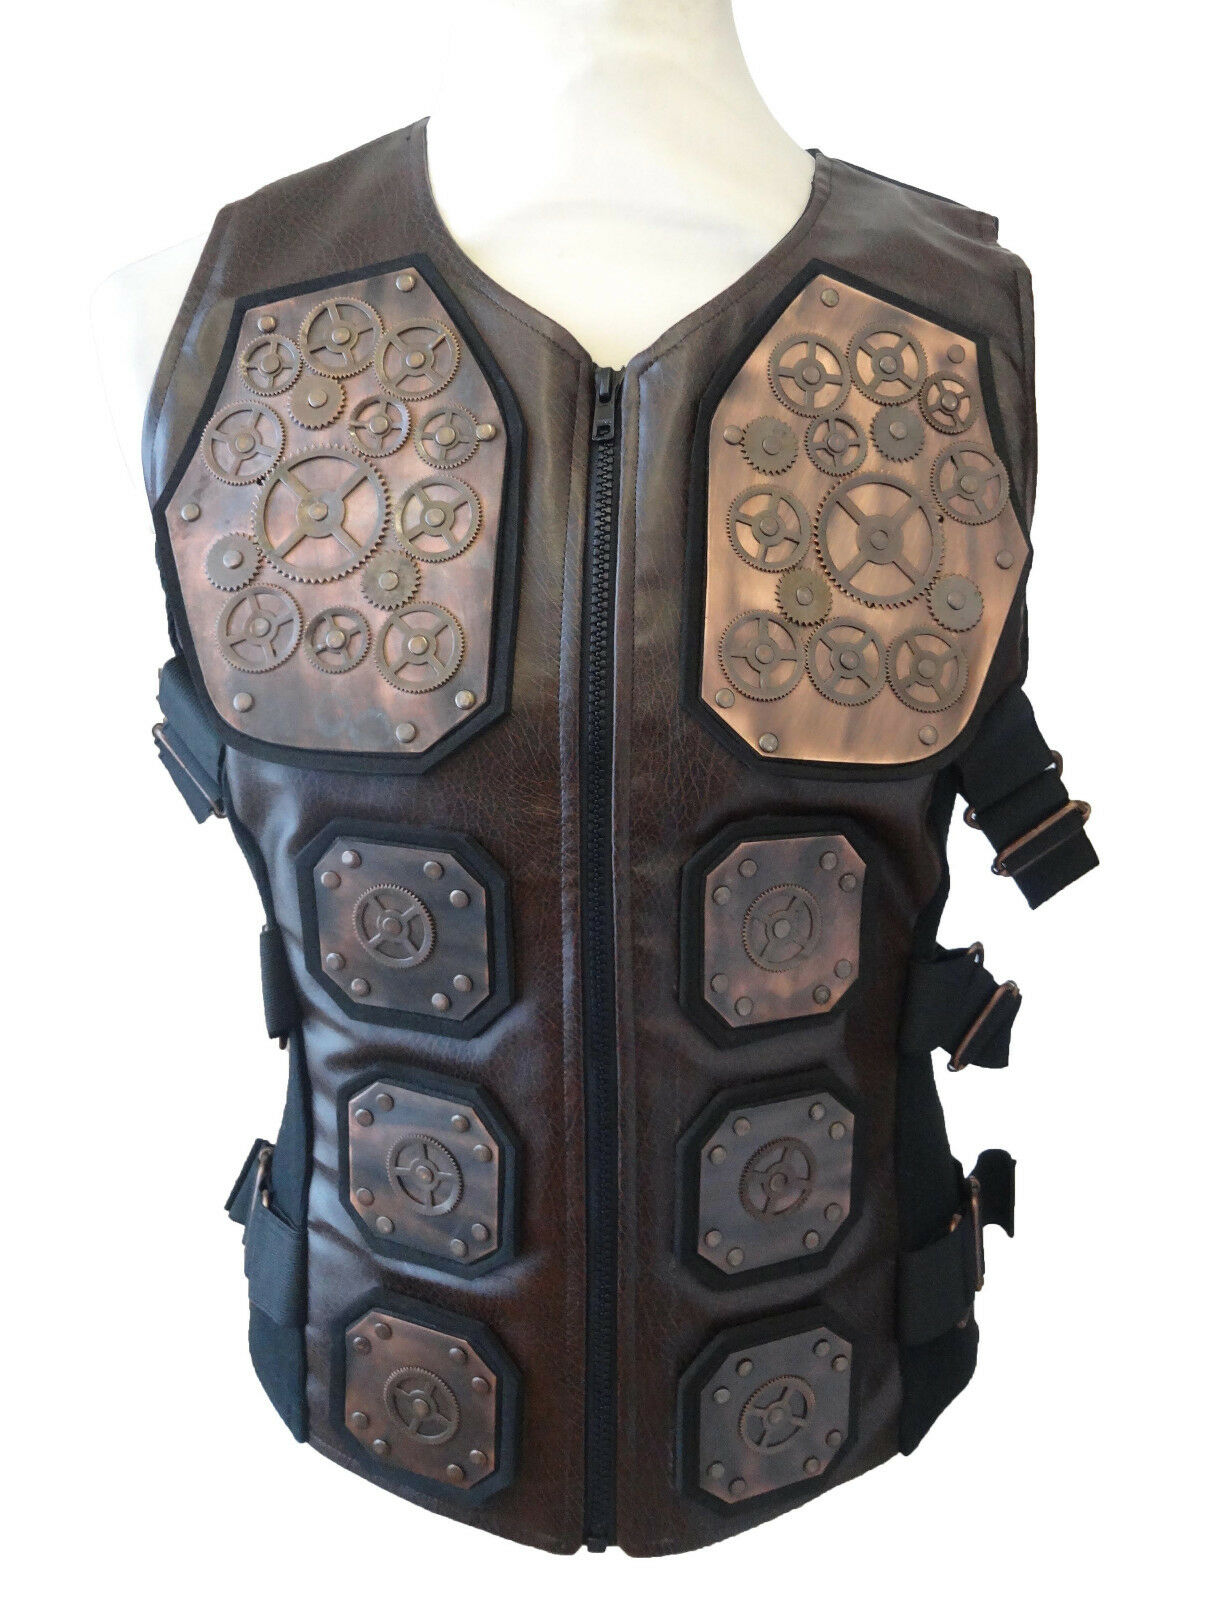 Steampunk industrial SDLlarp amour Waistcoat copper metal cogs size XL chest 46